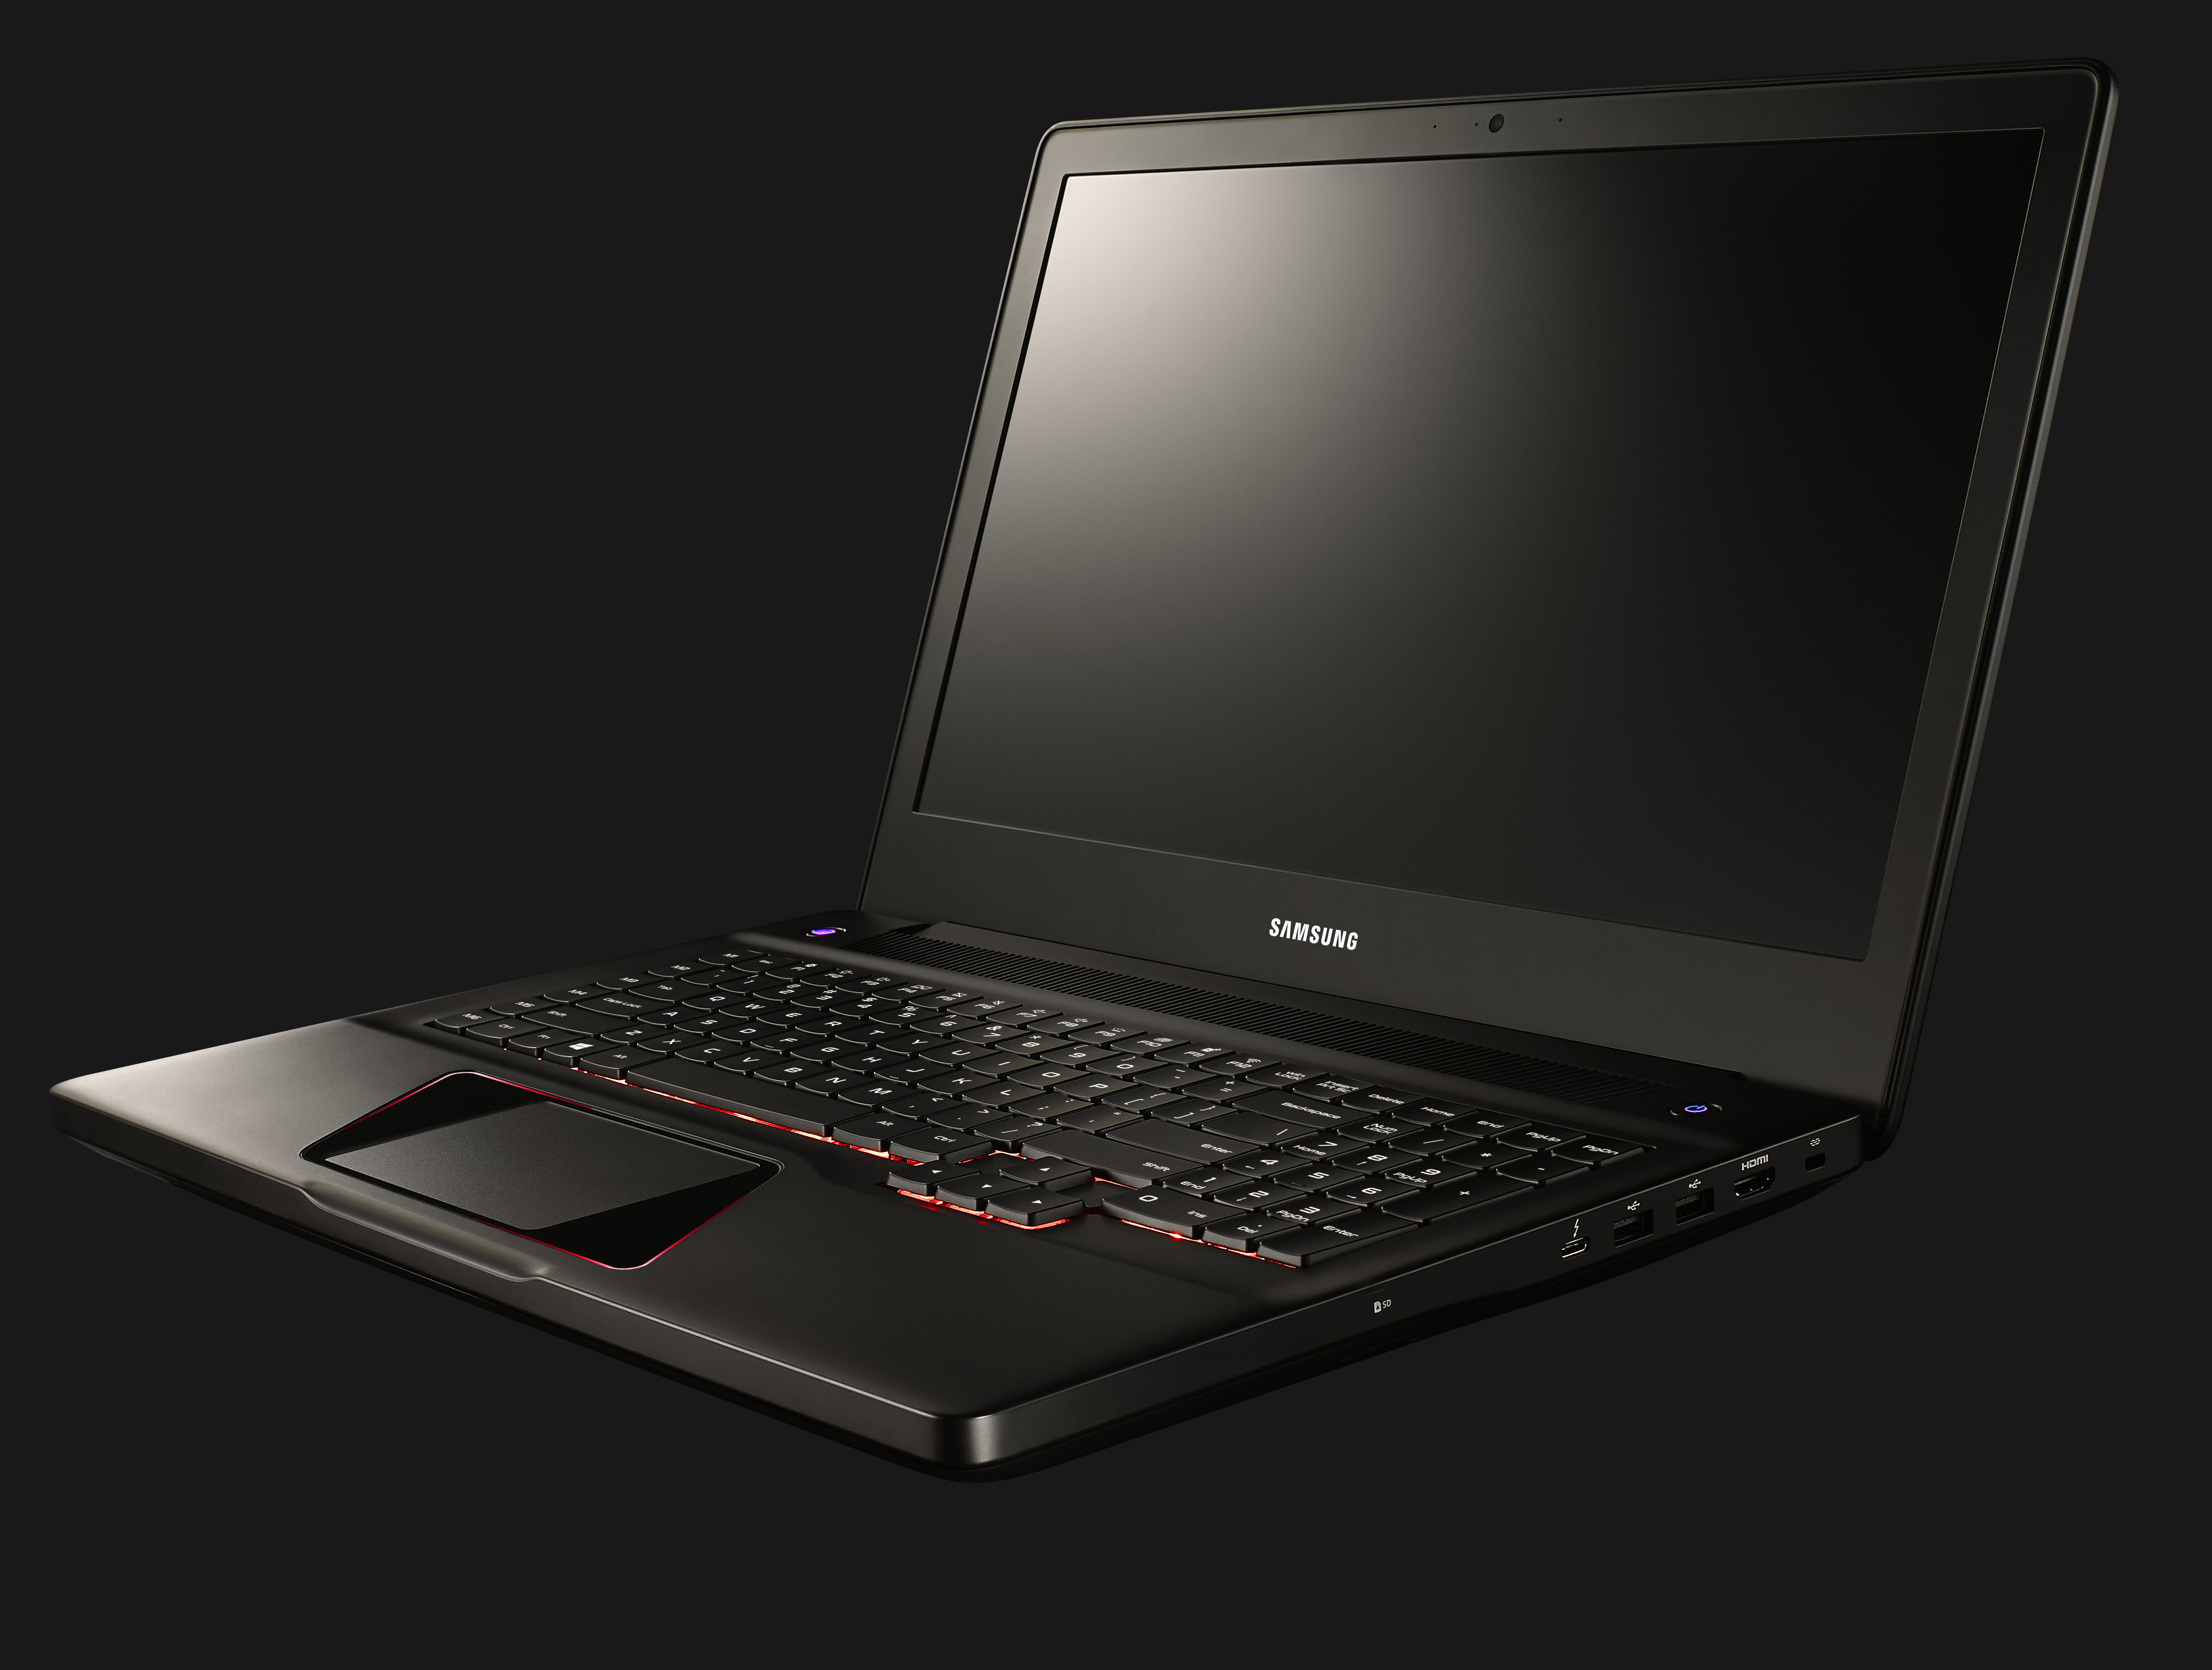 Samsung shows off Notebook Odyssey gaming laptop